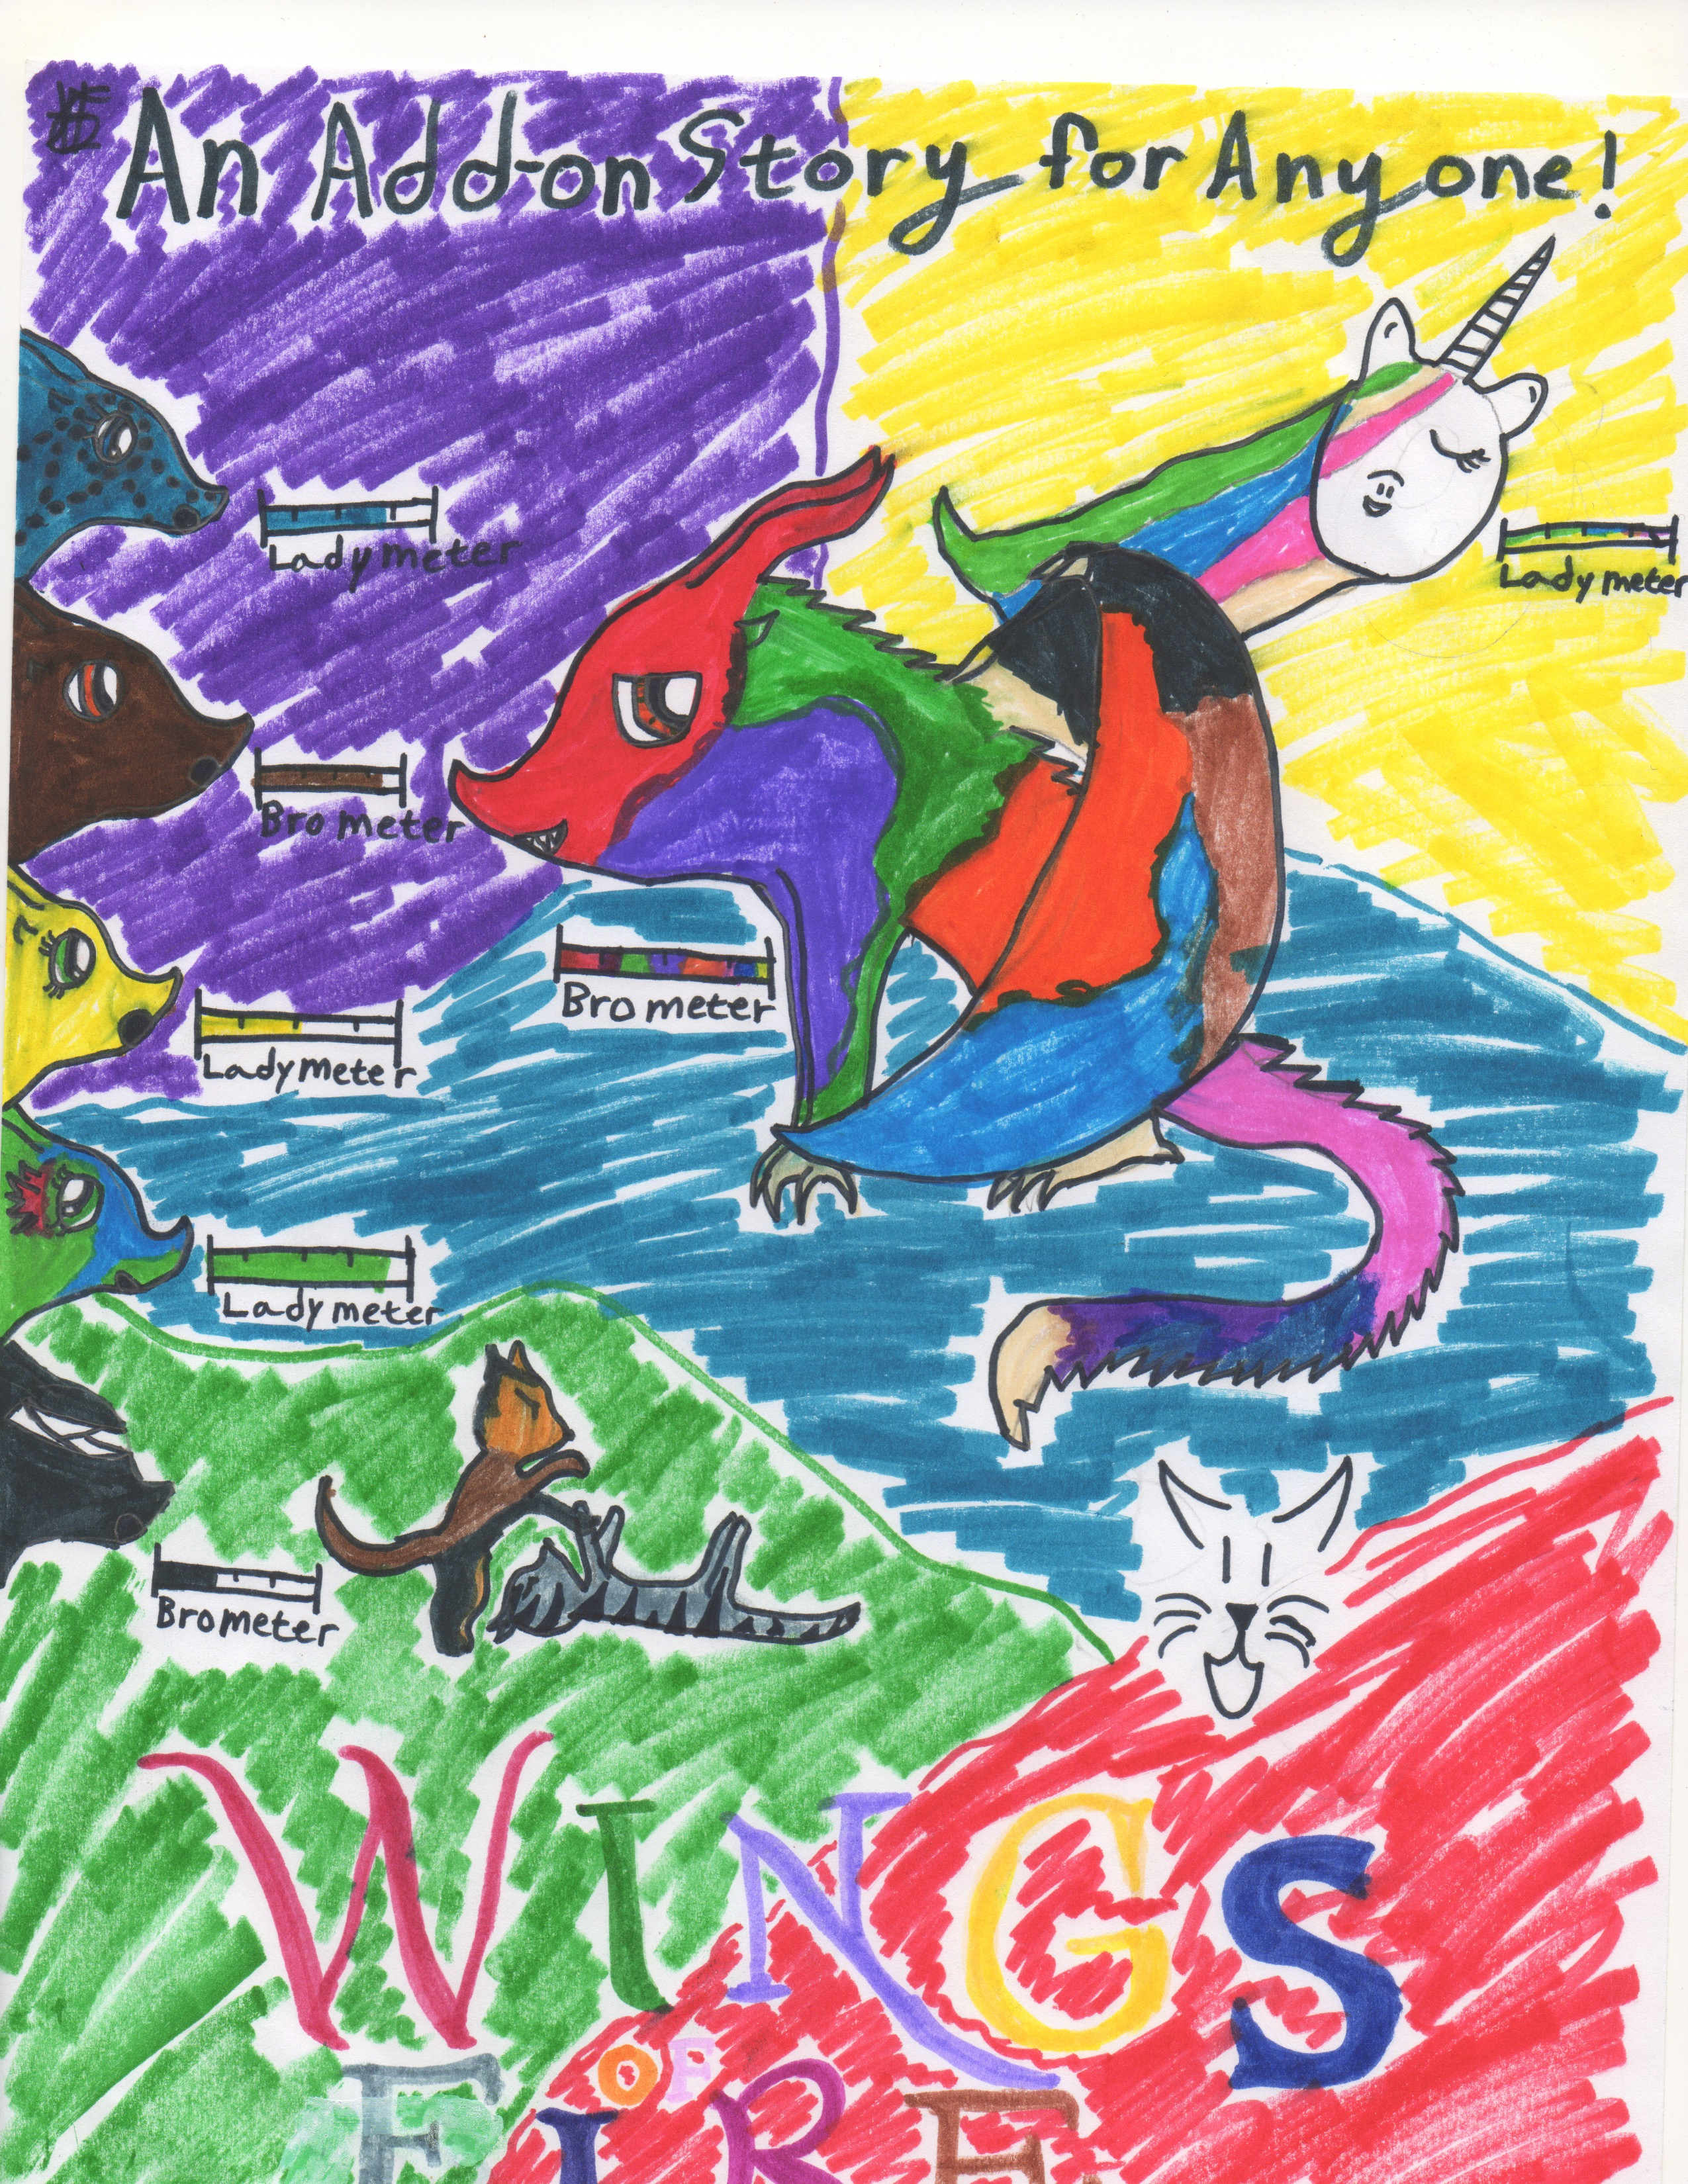 Pin By Jack On Flamingo How To Draw Flamingo Meme Background Roblox Memes Wings Of Fire An Add On Story For Anyone Wings Of Fire Fanon Wiki Fandom